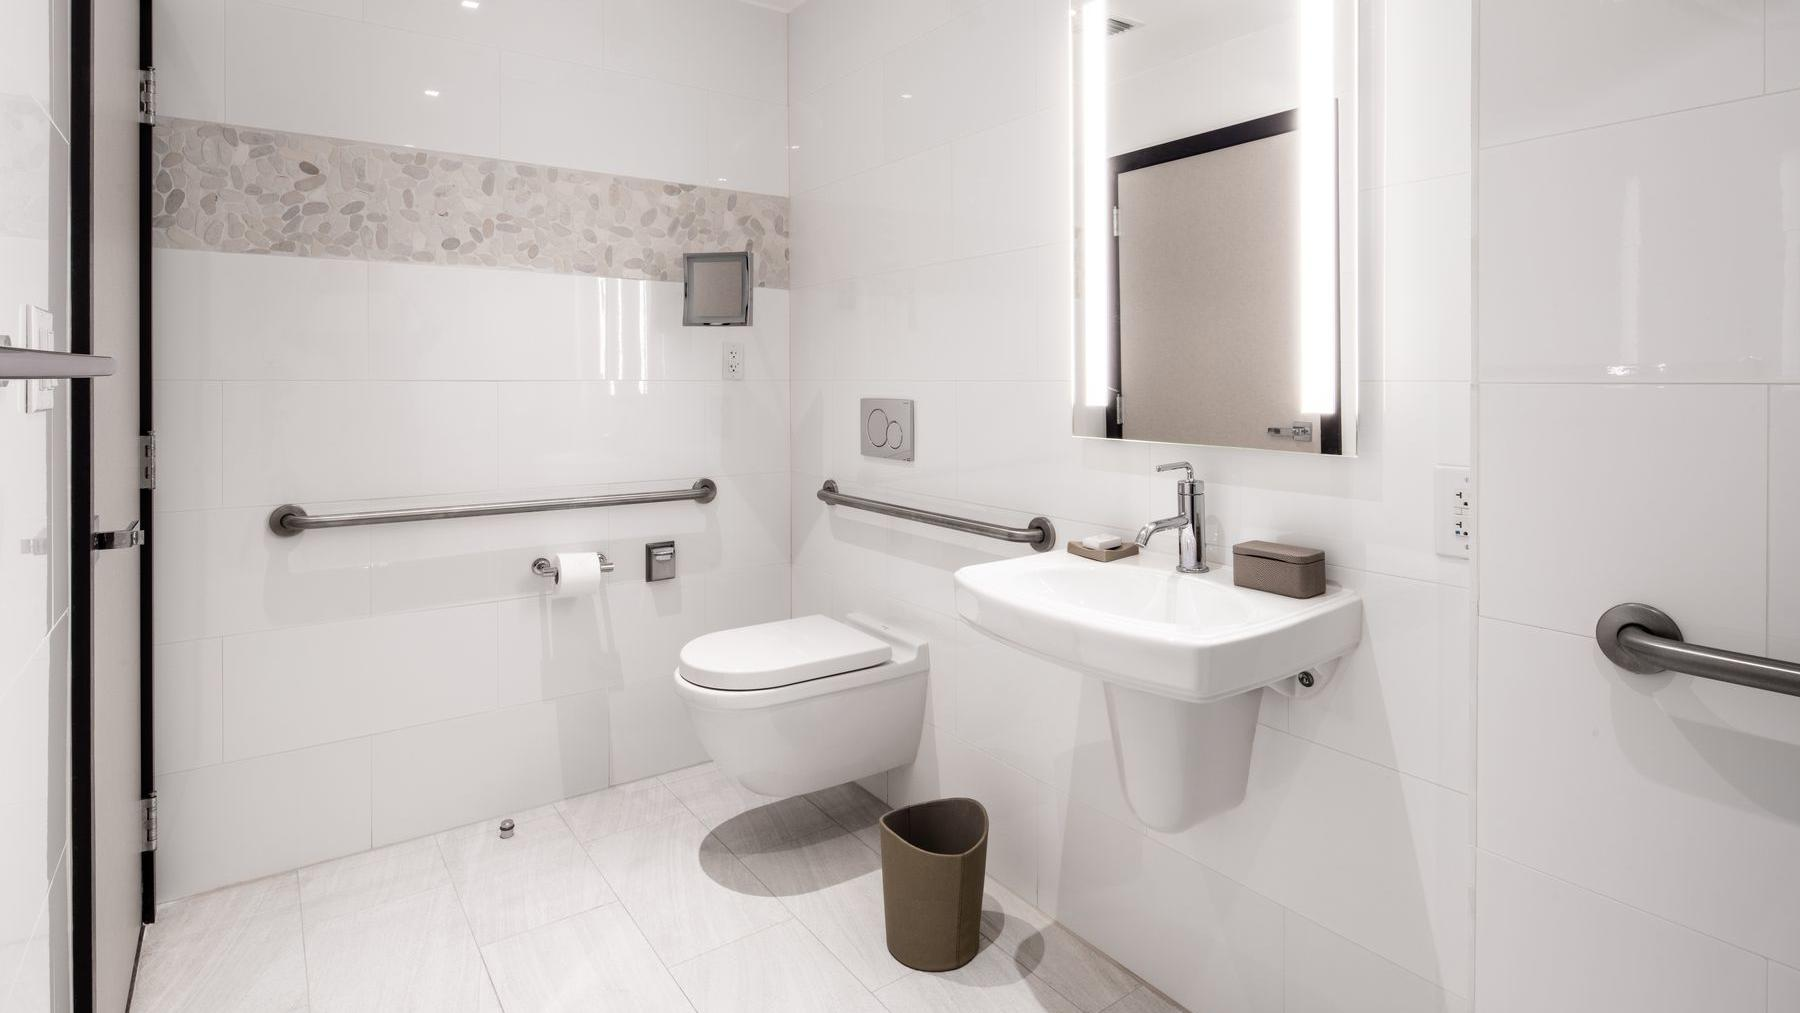 accessible bathroom with toilet and sink